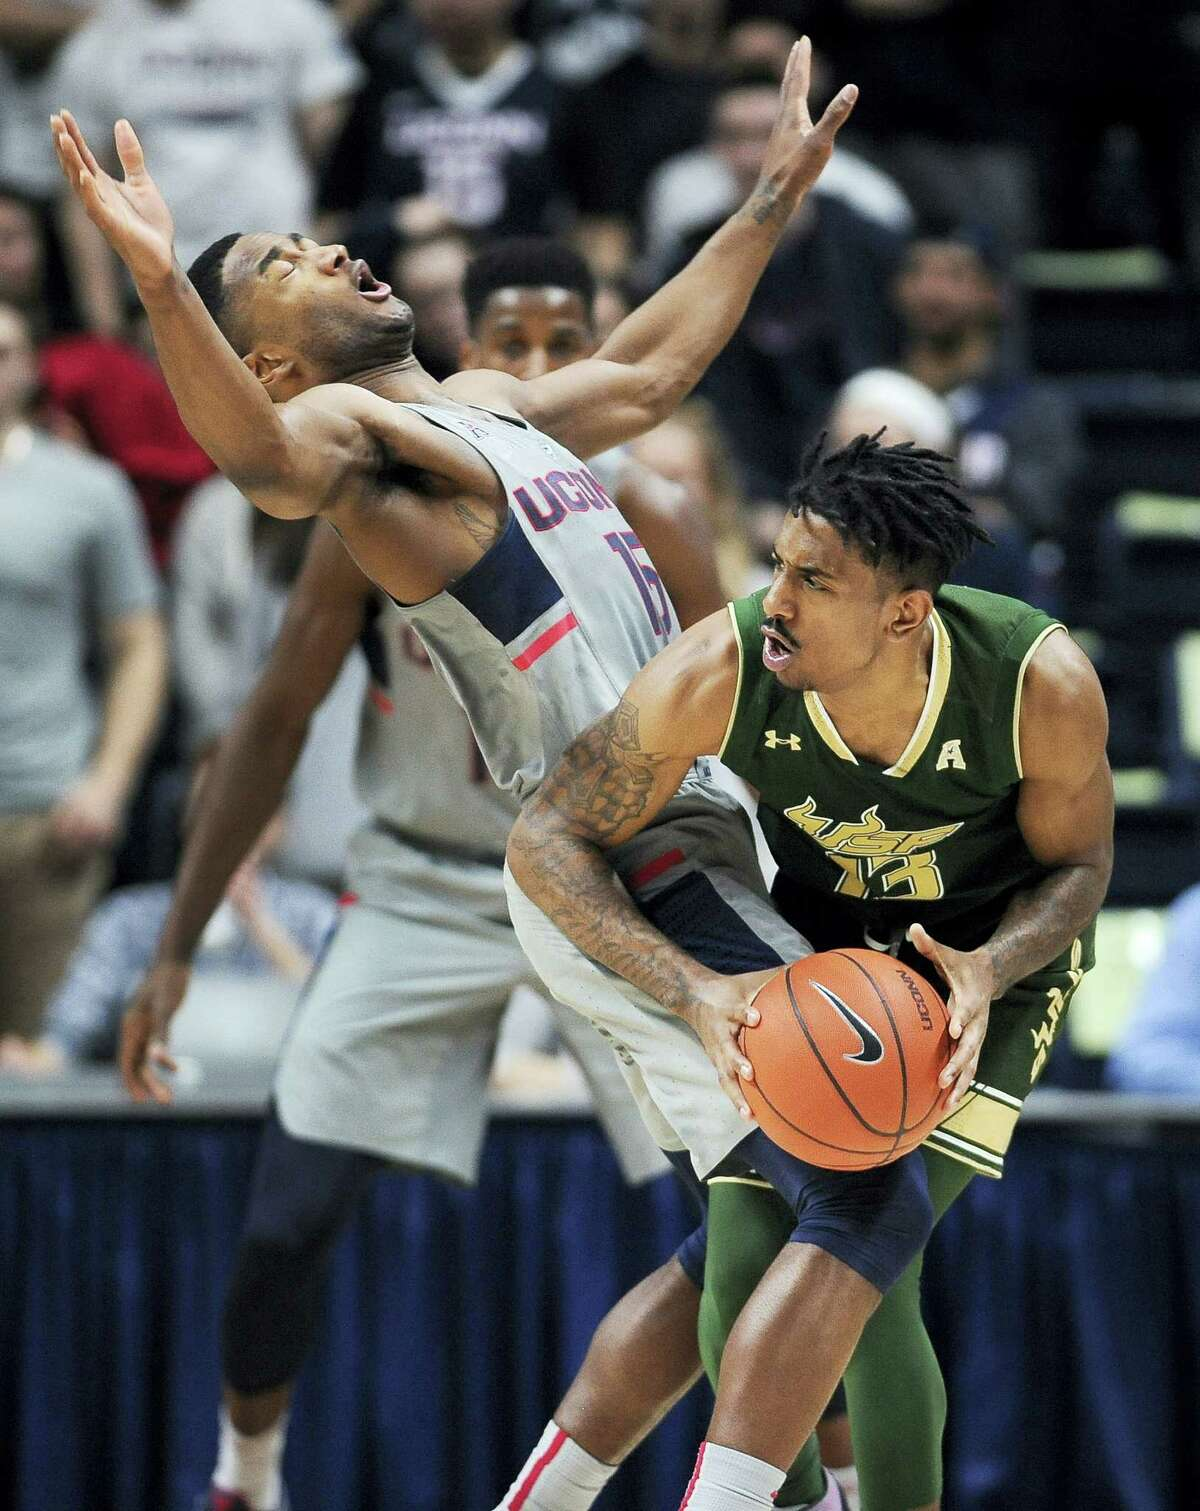 Not only has Rodney Purvis been putting on a show offensively of late, but he's has also had a significant impact on defense, drawing a charge from South Florida's Geno Thorpe here last week.